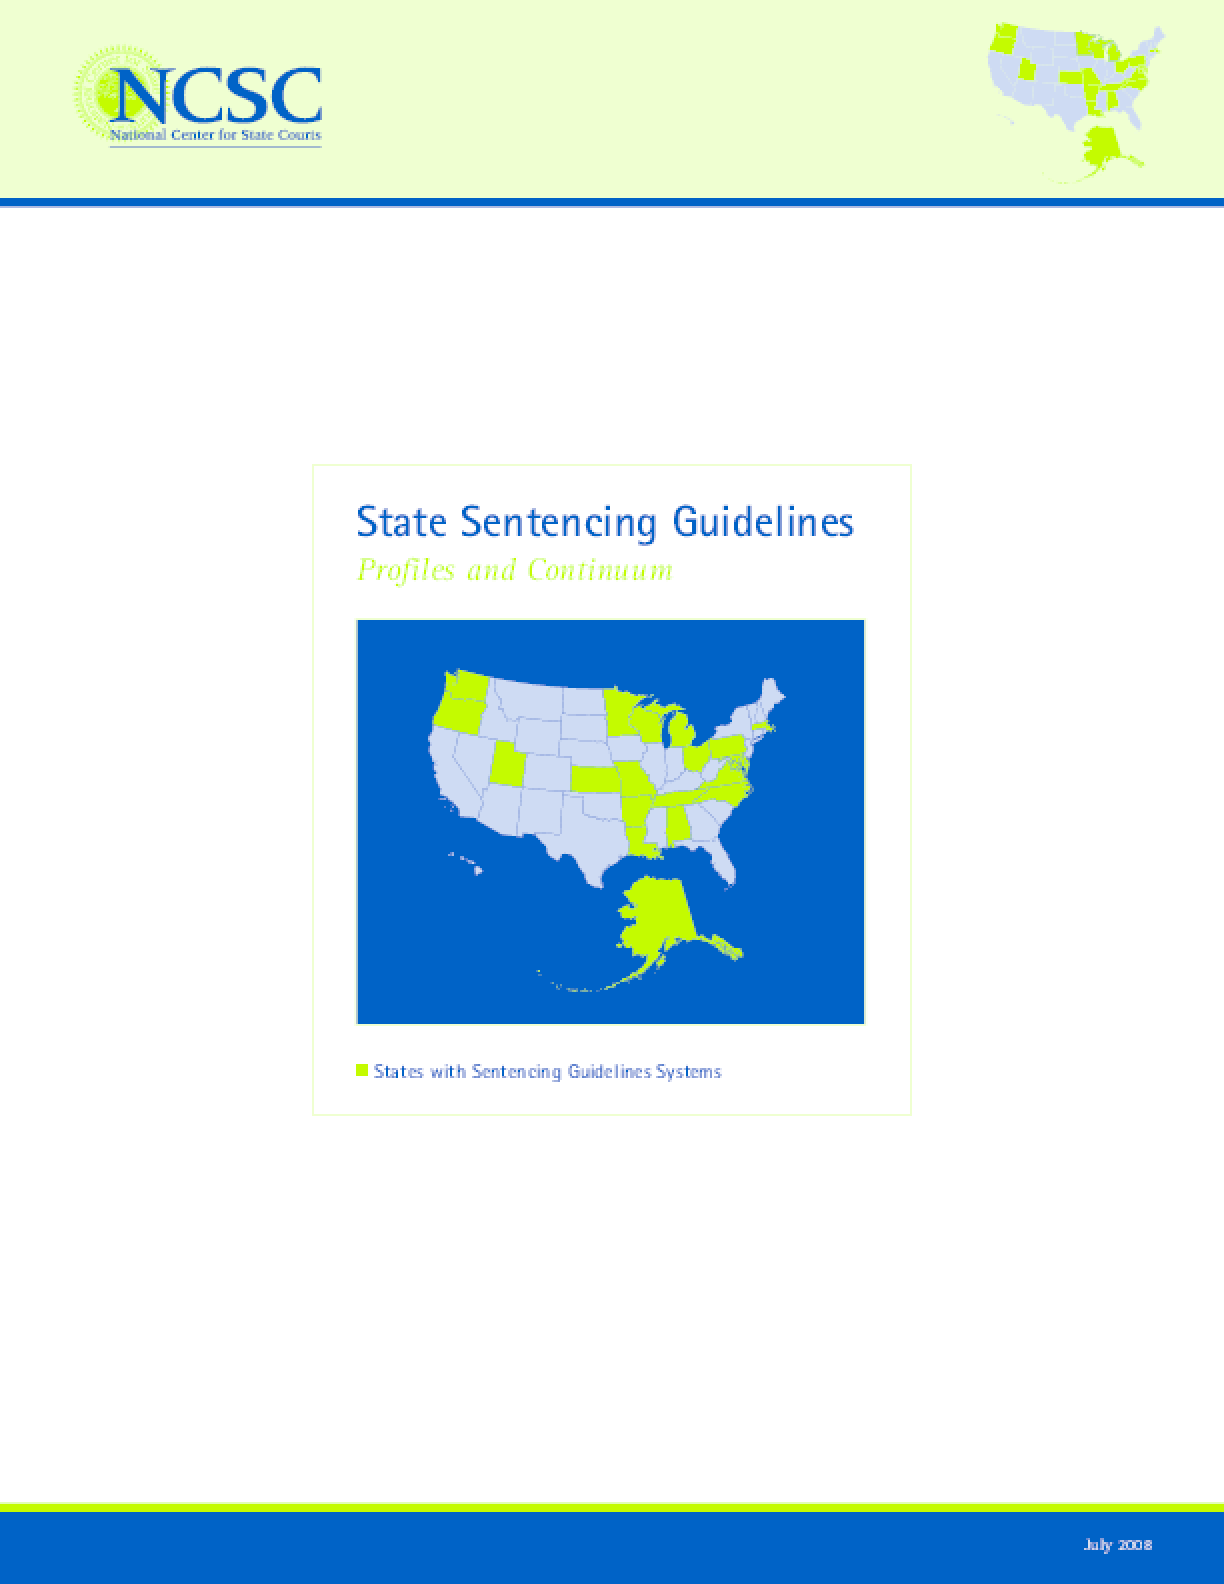 State Sentencing Guidelines: Profiles and Continuum